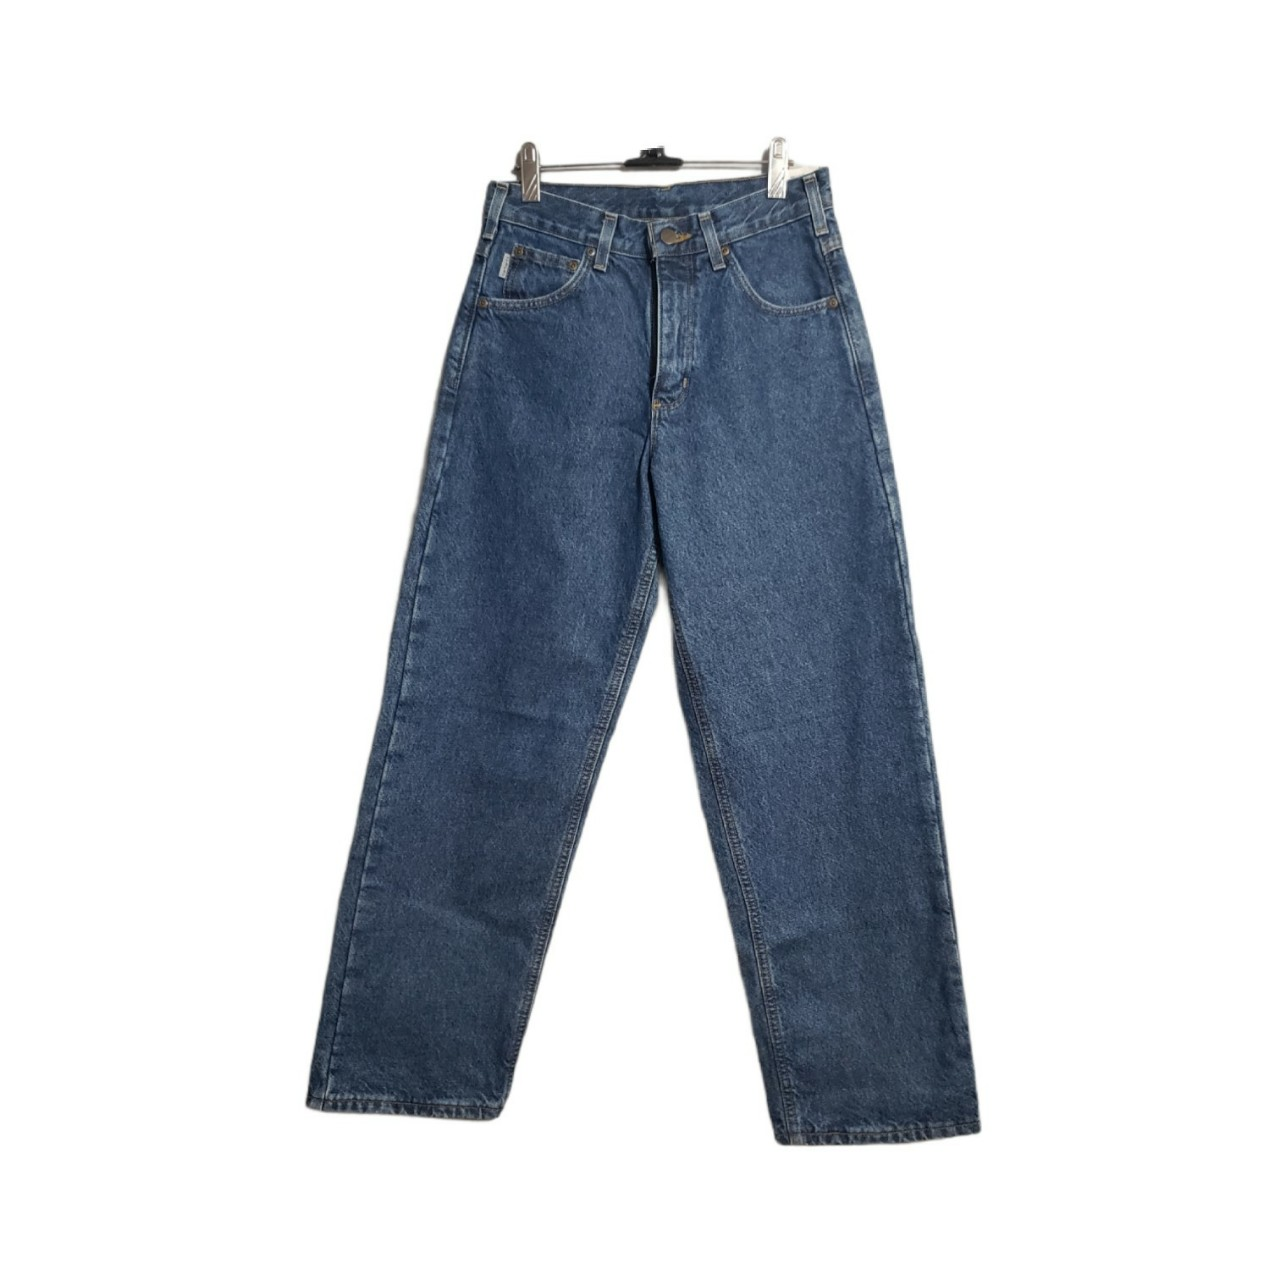 Product Image 1 - Vintage Carhartt Jeans   Perfect straight